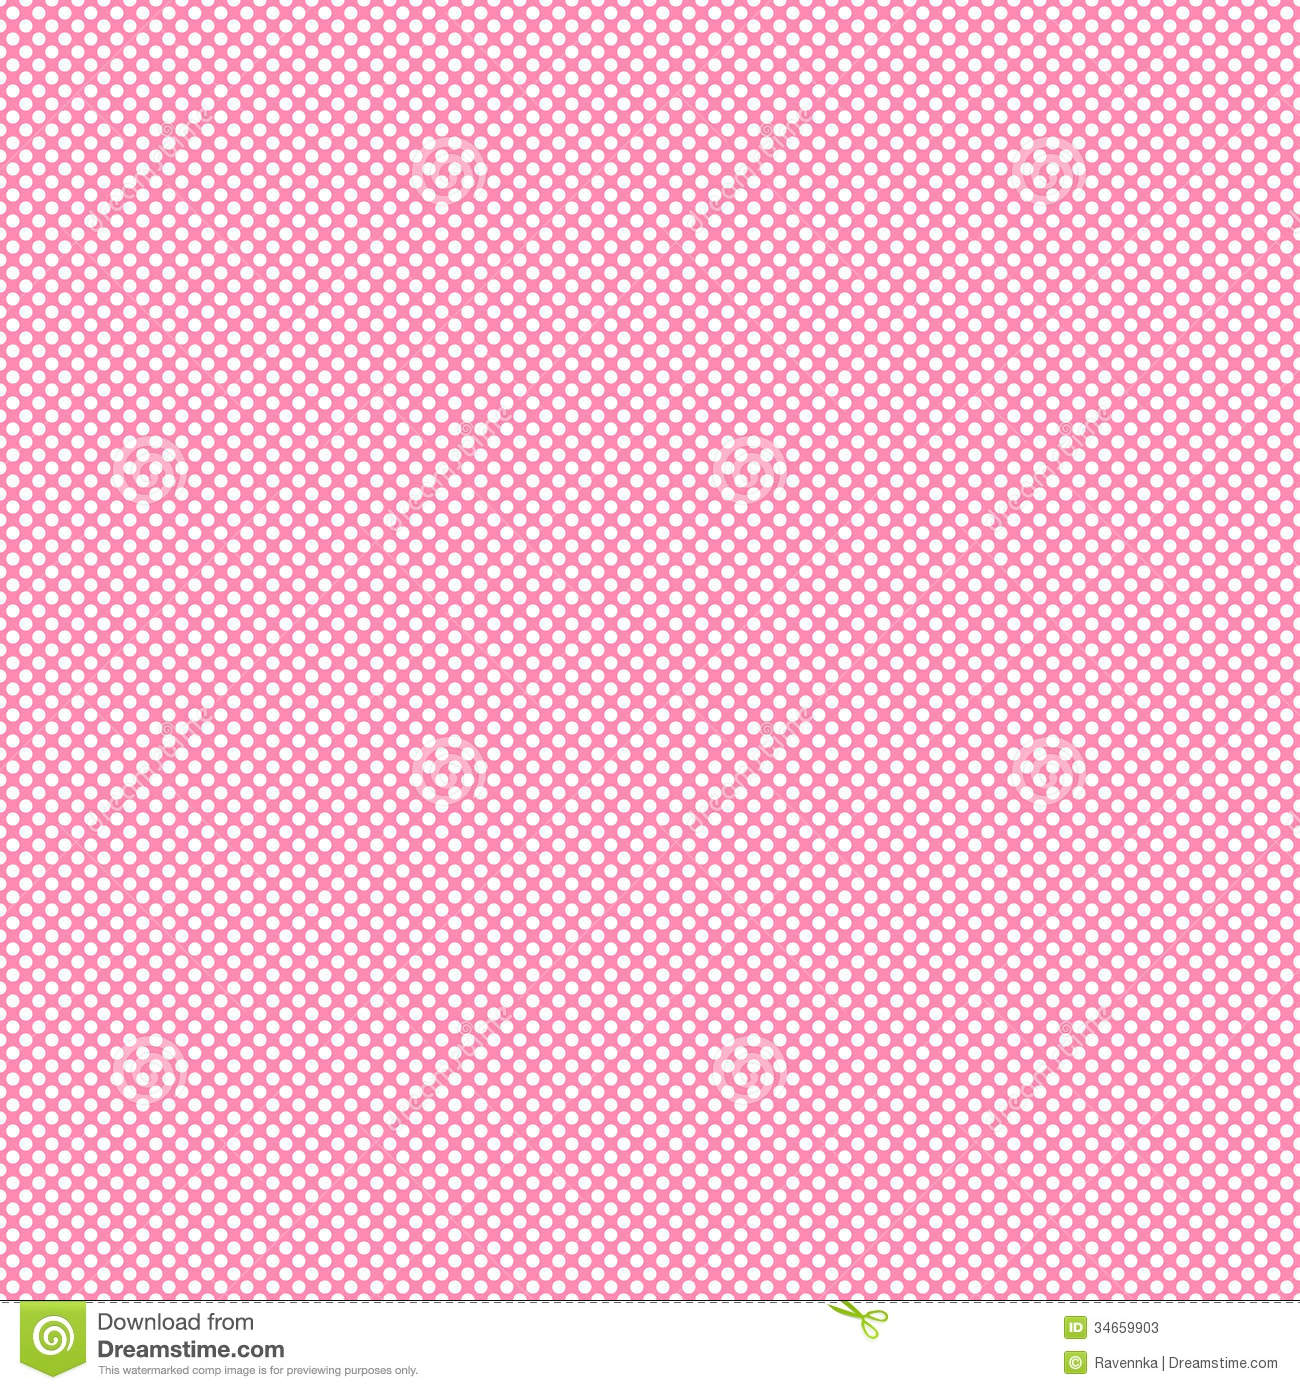 Polka Dot Pattern Stock Photos - Image: 34659903: becuo.com/pink-polka-dot-pattern-background